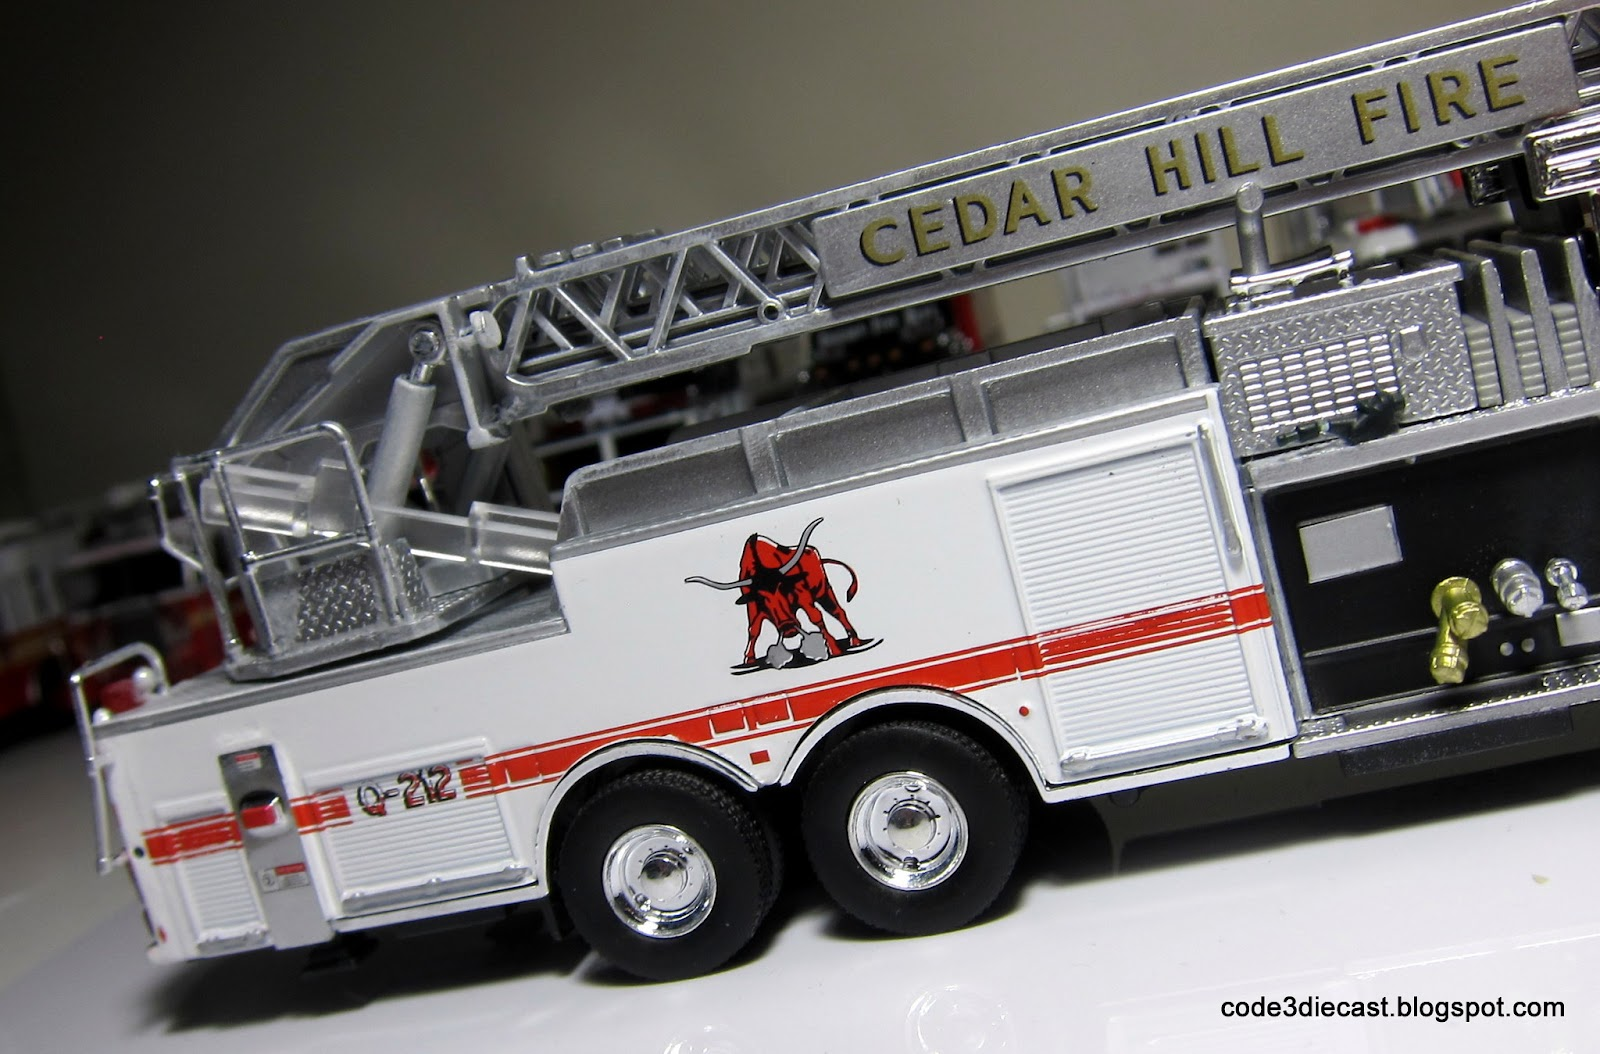 Used Pierce Ladder Truck Html Drone Camera Diagram Of Fire Engine With Dash Rear Mount On 06 Arrow Xt